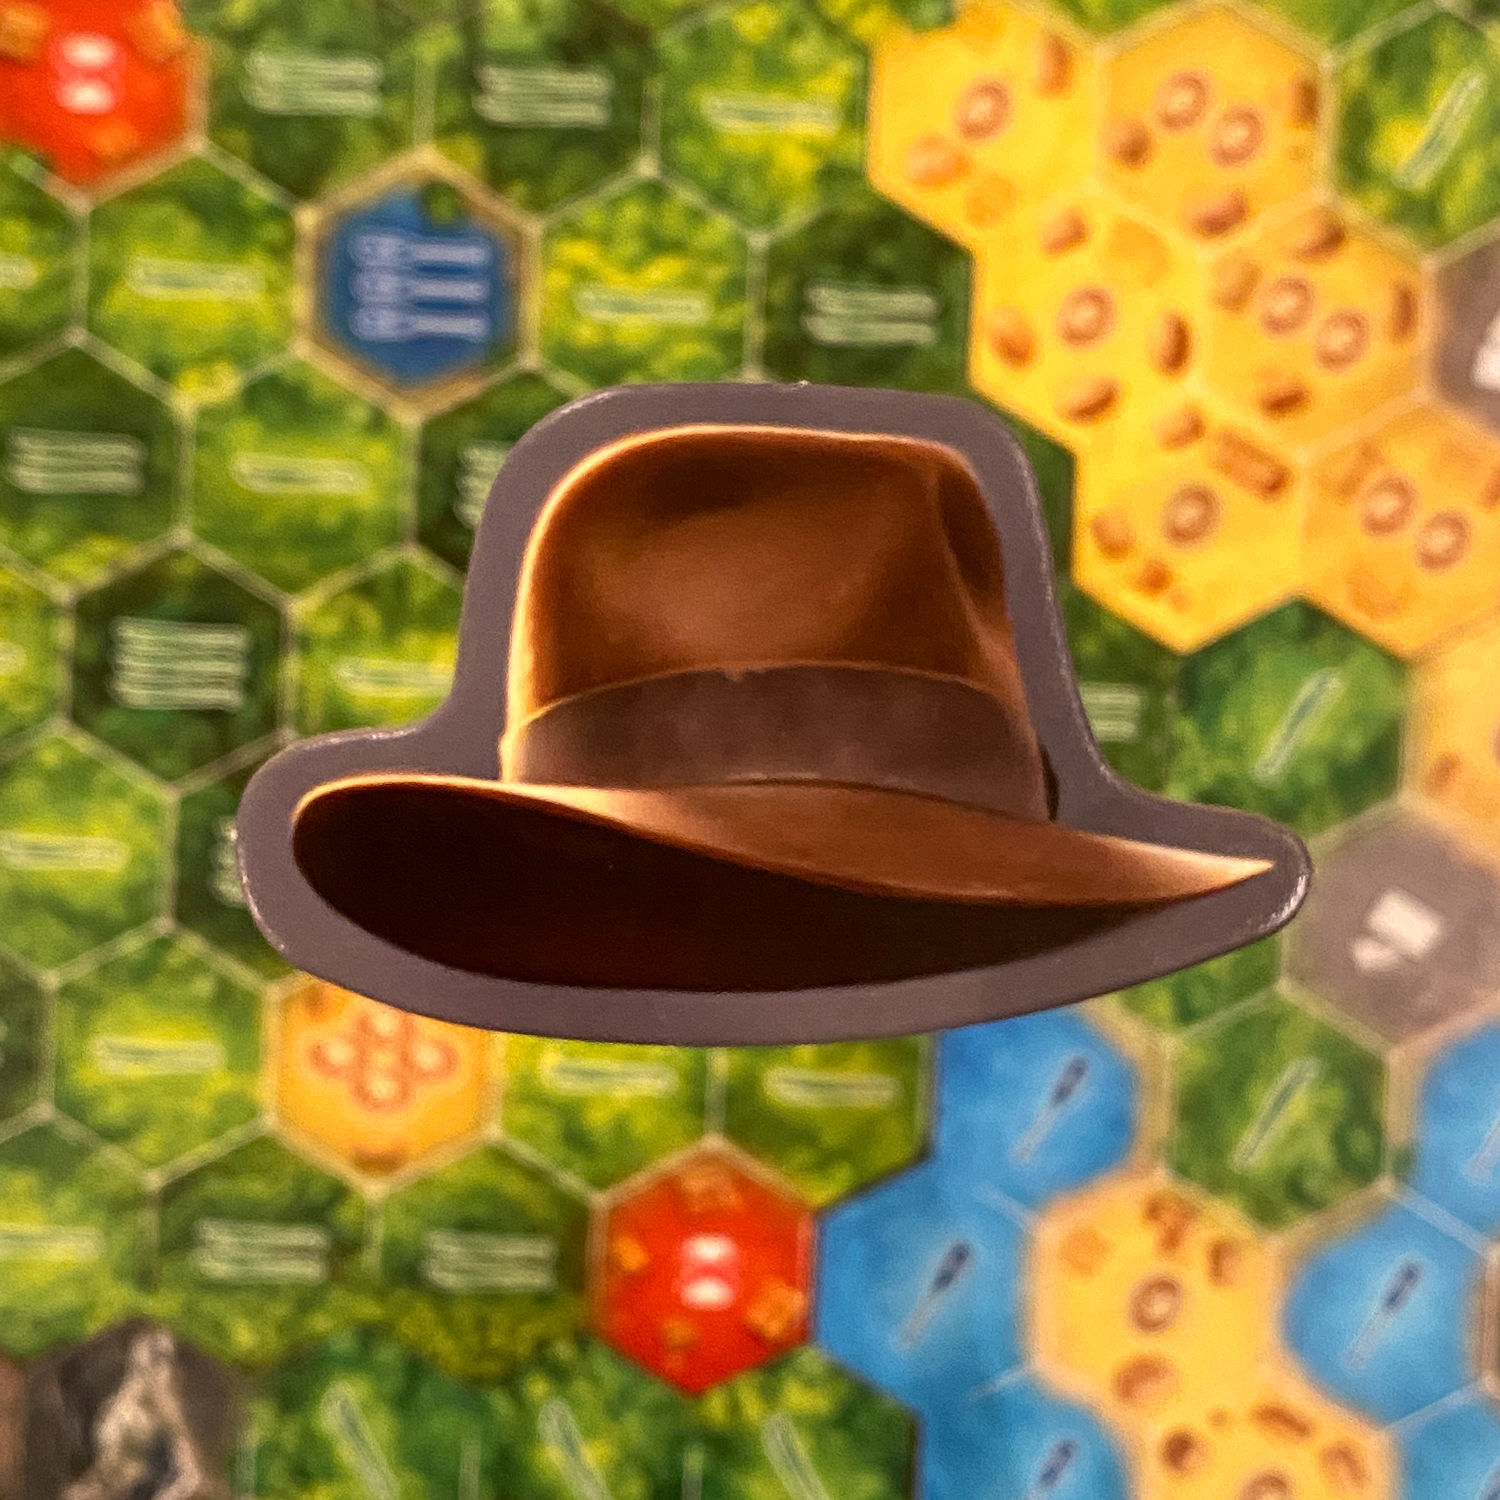 The-Quest-for-El-Dorado-Review-First-Player-Token